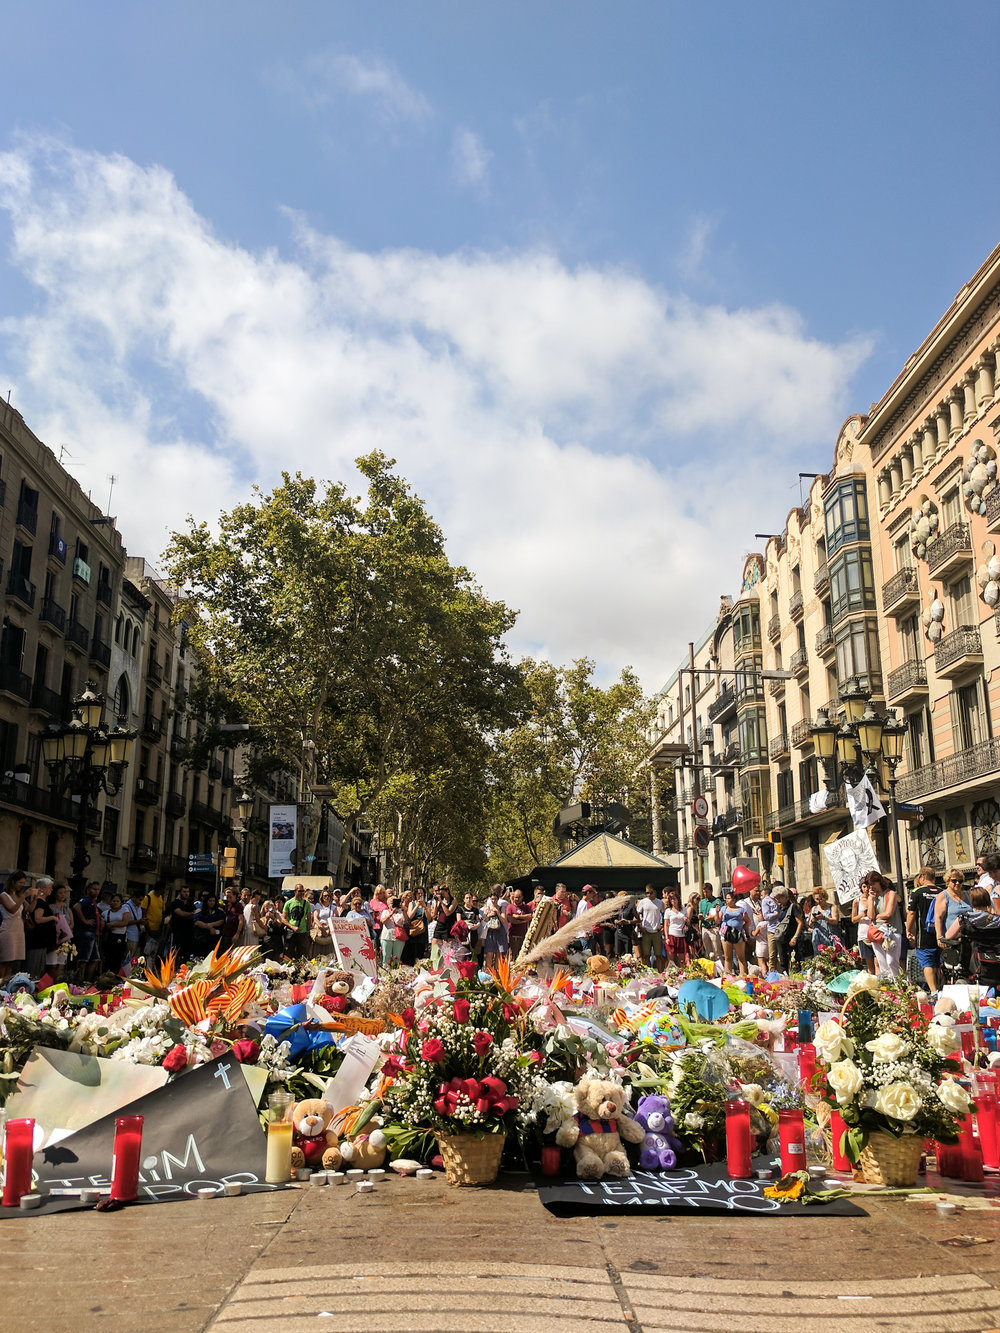 On Monday after class we visited the Las Ramblas memorial, which is located on the exact spot the attackers' van stopped.